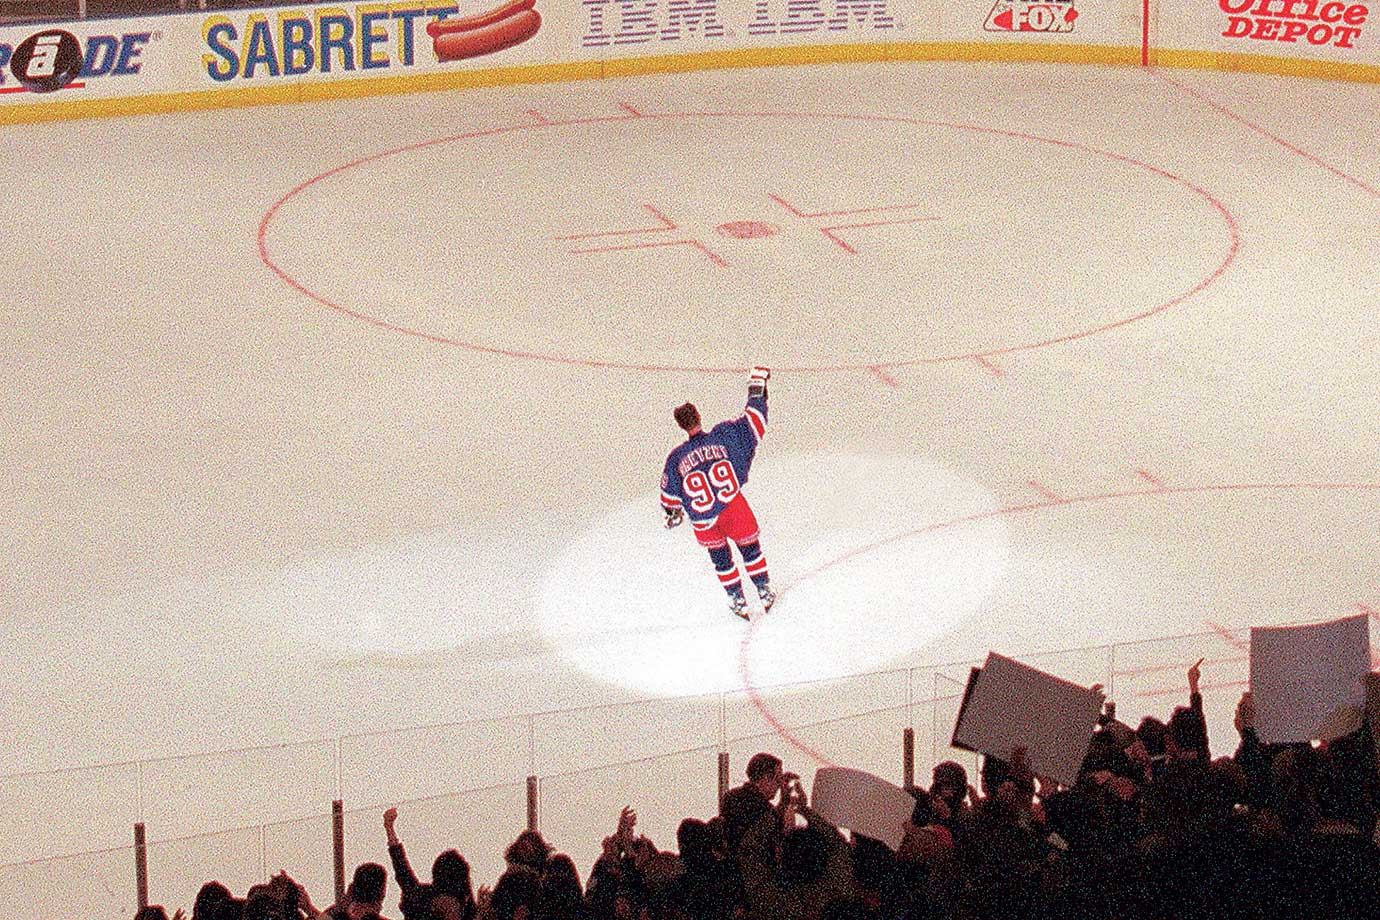 Wayne Gretzky, the only player in NHL history to have his jersey number retired by all teams, called it a career after 21 seasons and 61 NHL records. During his final game, in which he recorded an assist, he was awarded both the first, second and third star of the game.